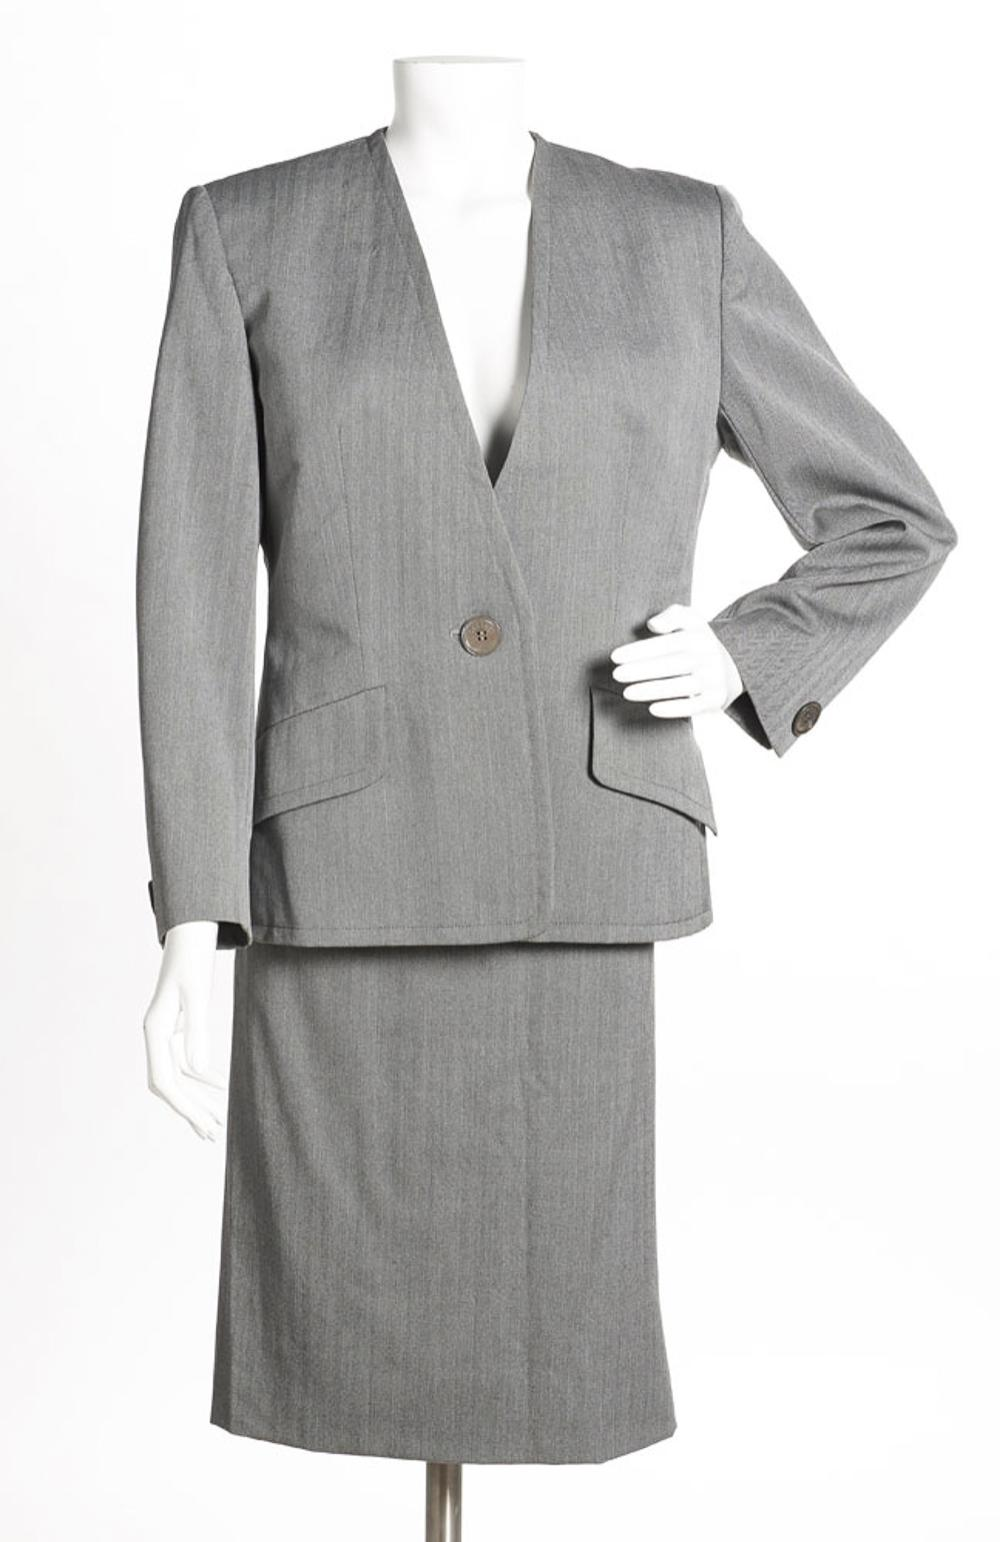 Celine, coat and skirt in gray and black